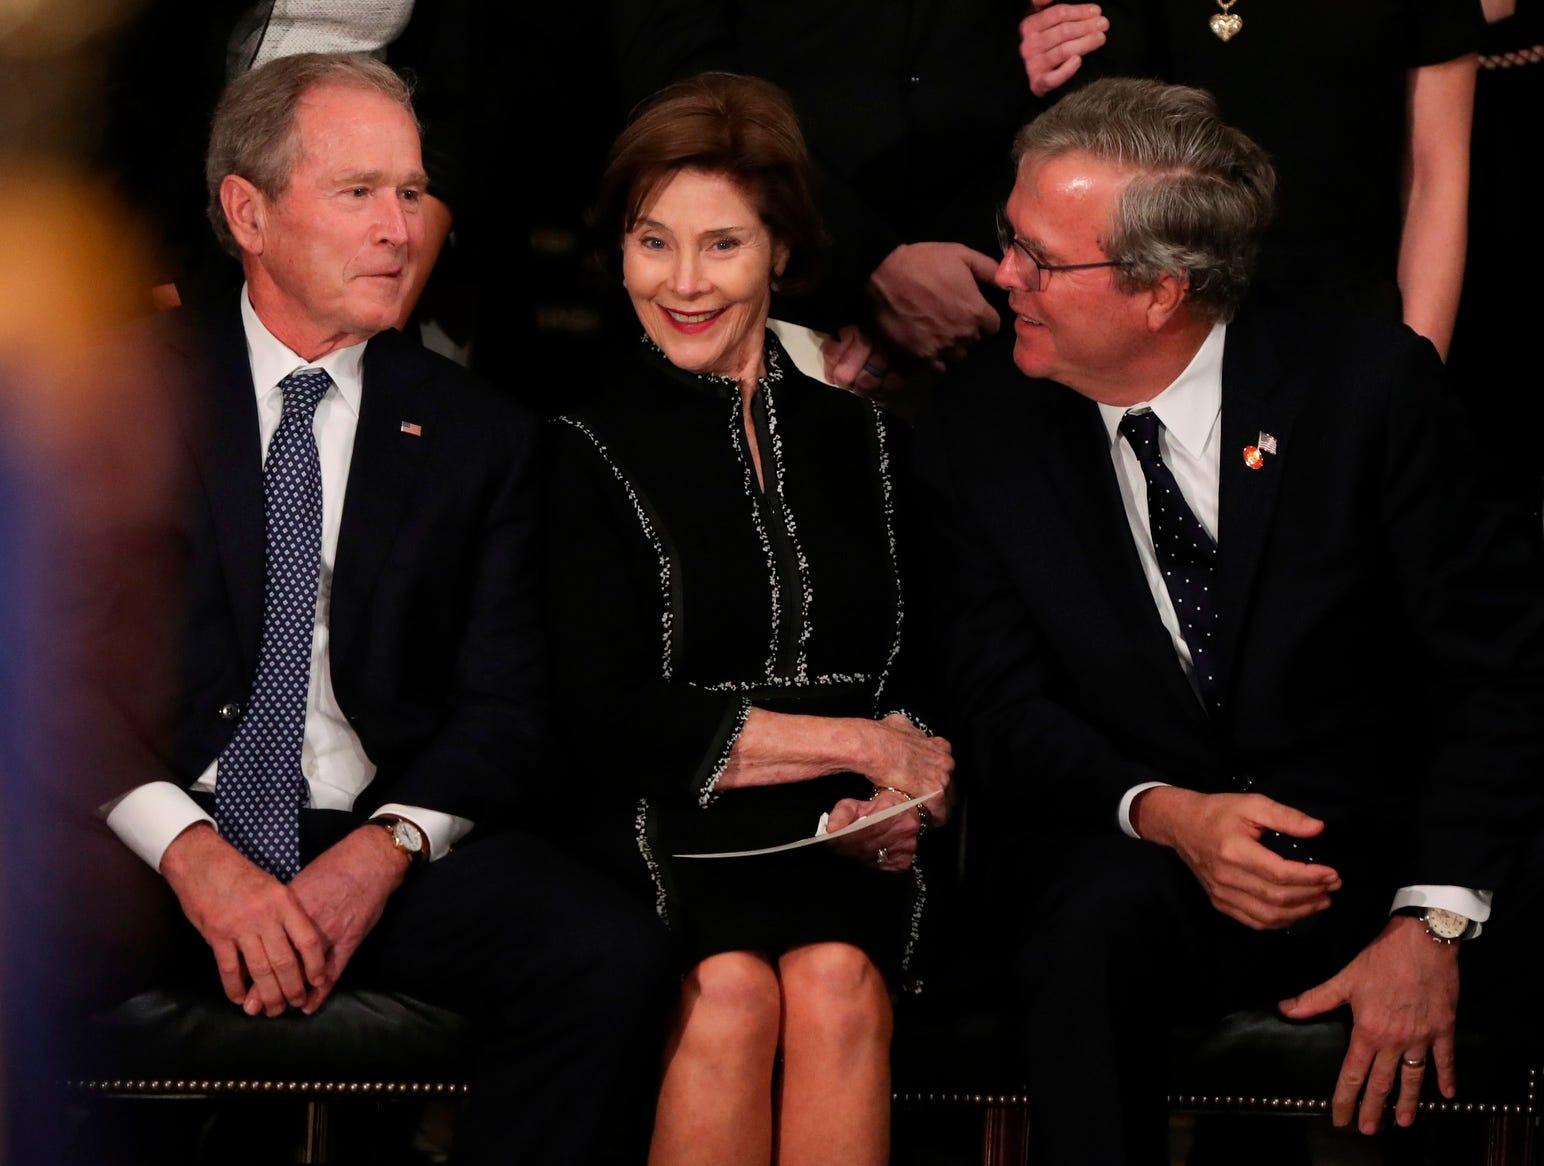 Former president George W. Bush, left, former first lady Laura Bush, and former Florida Governor Jeb Bush share a moment as the late former President George H.W. Bush lies in state inside the Rotunda of the US Capitol.